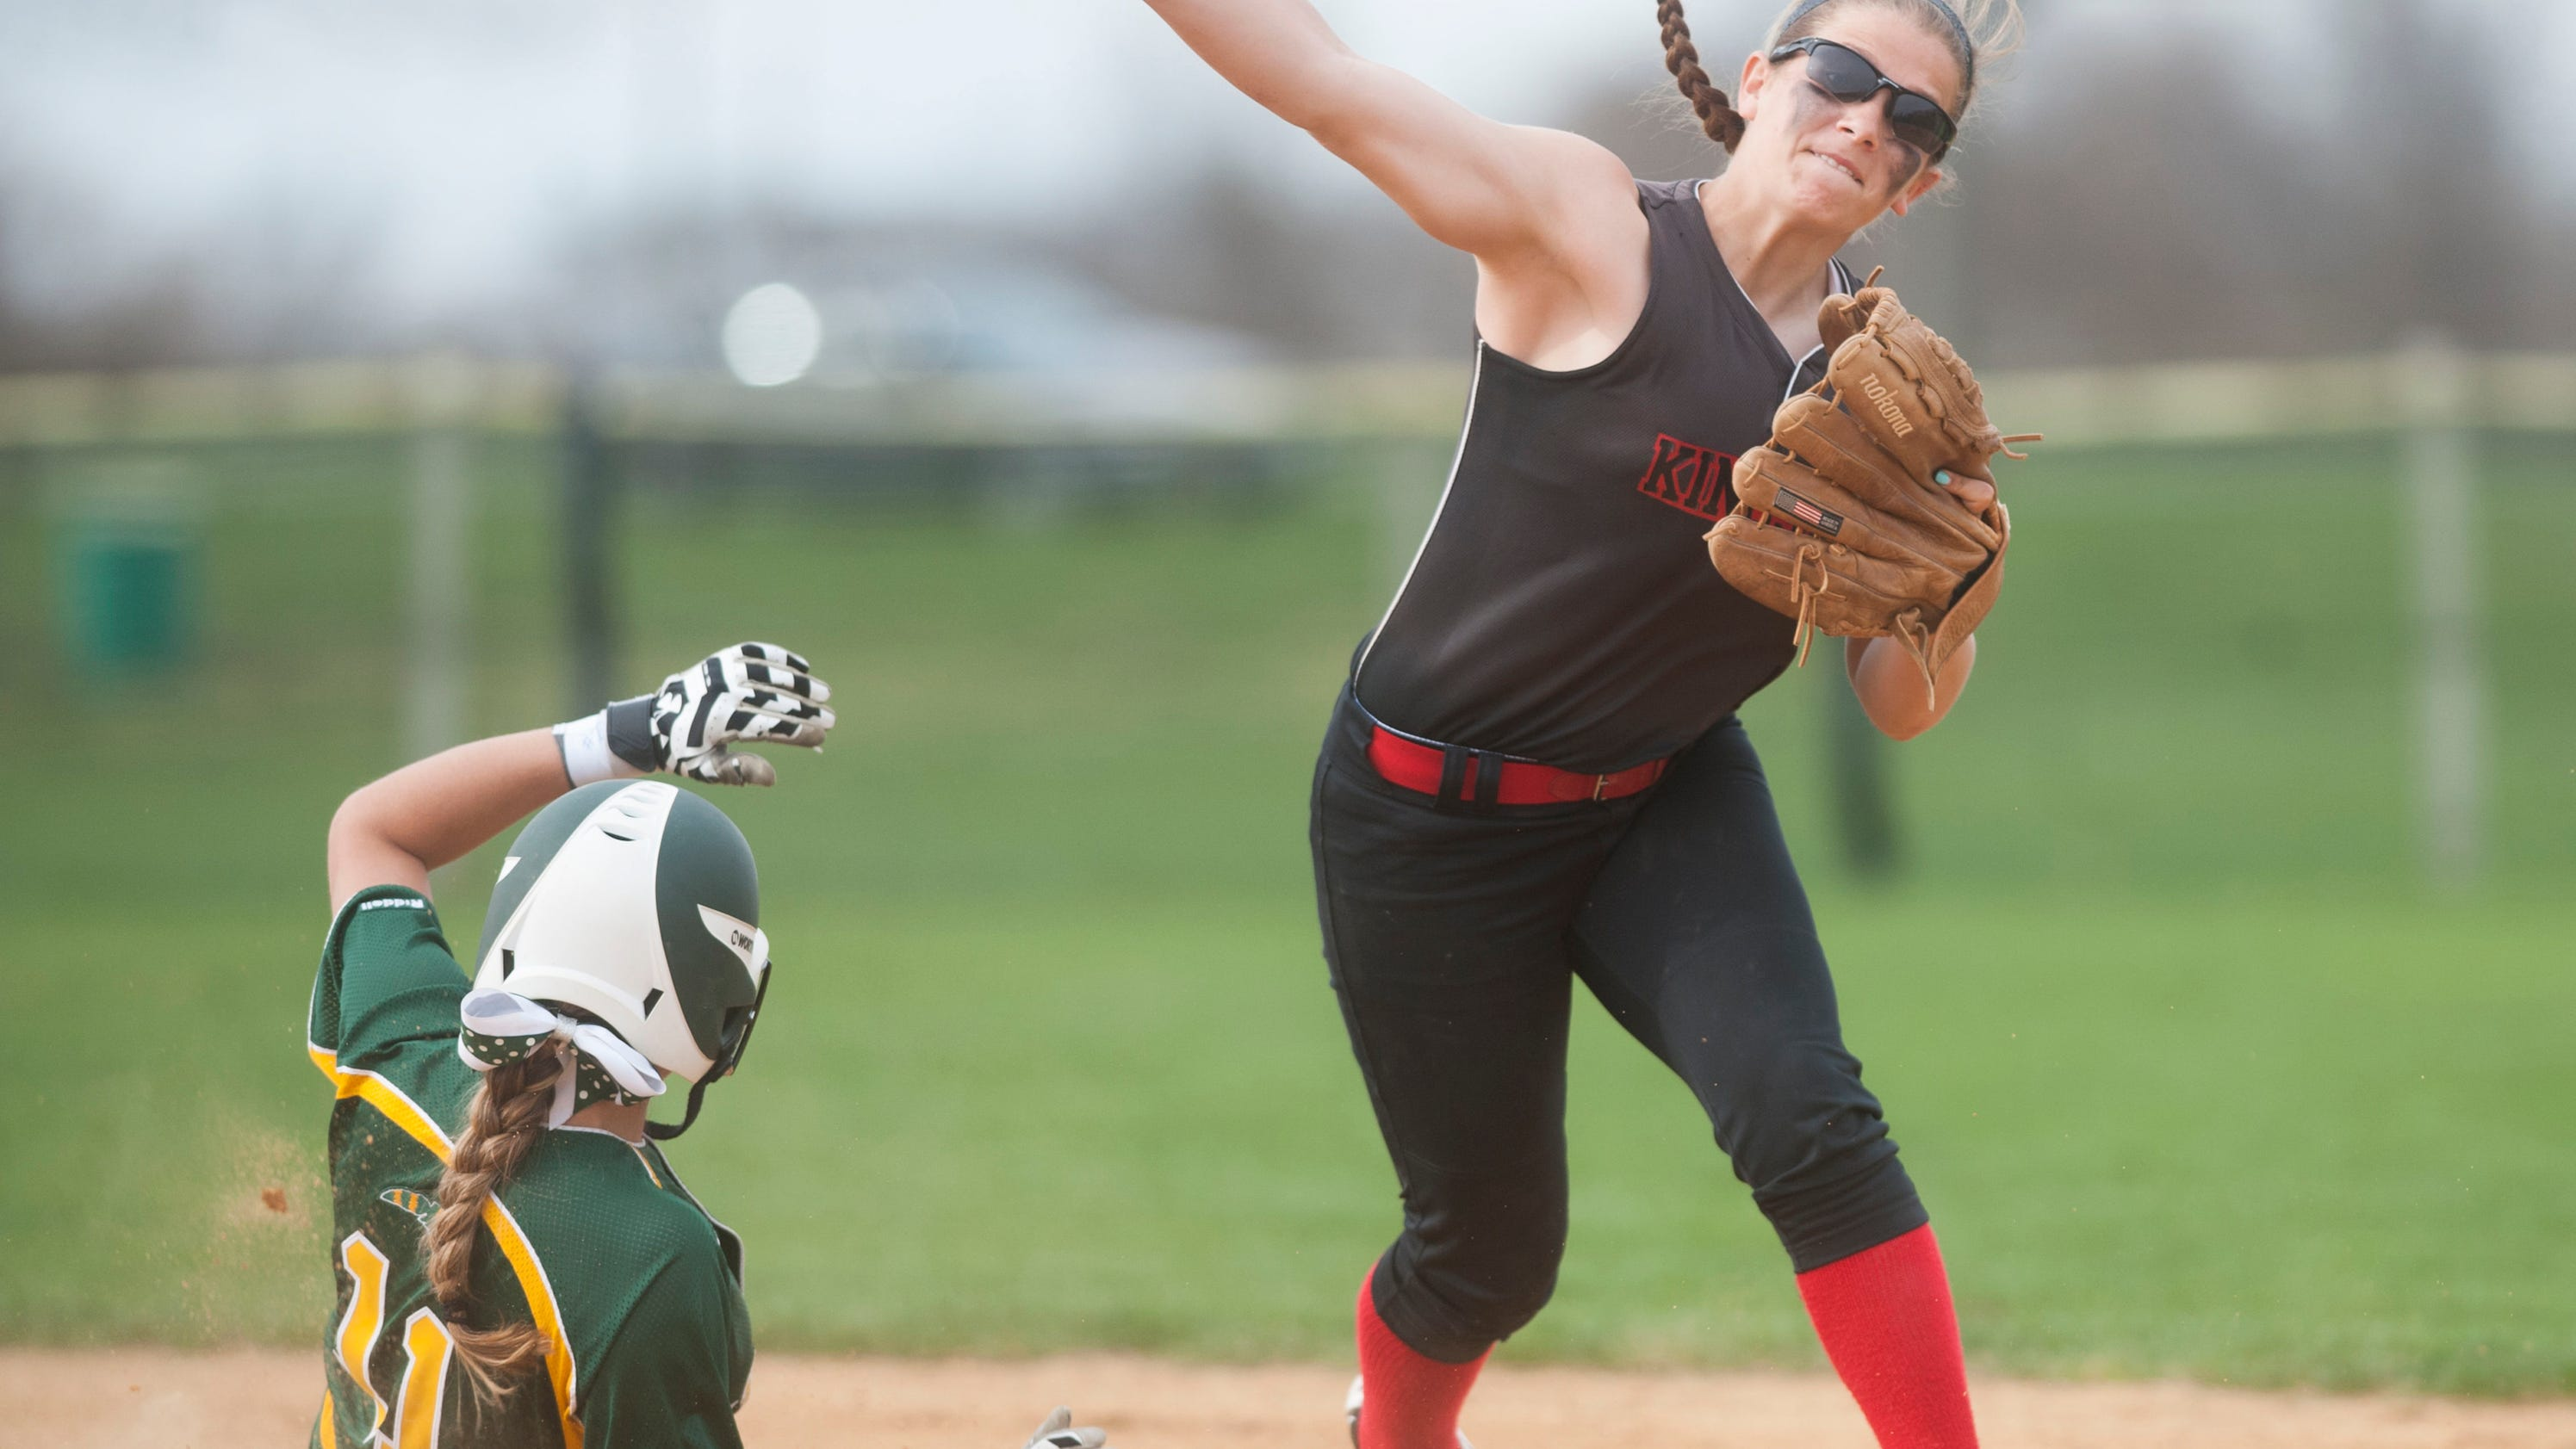 Kingsway Dragons softball team aims for South Jersey crown